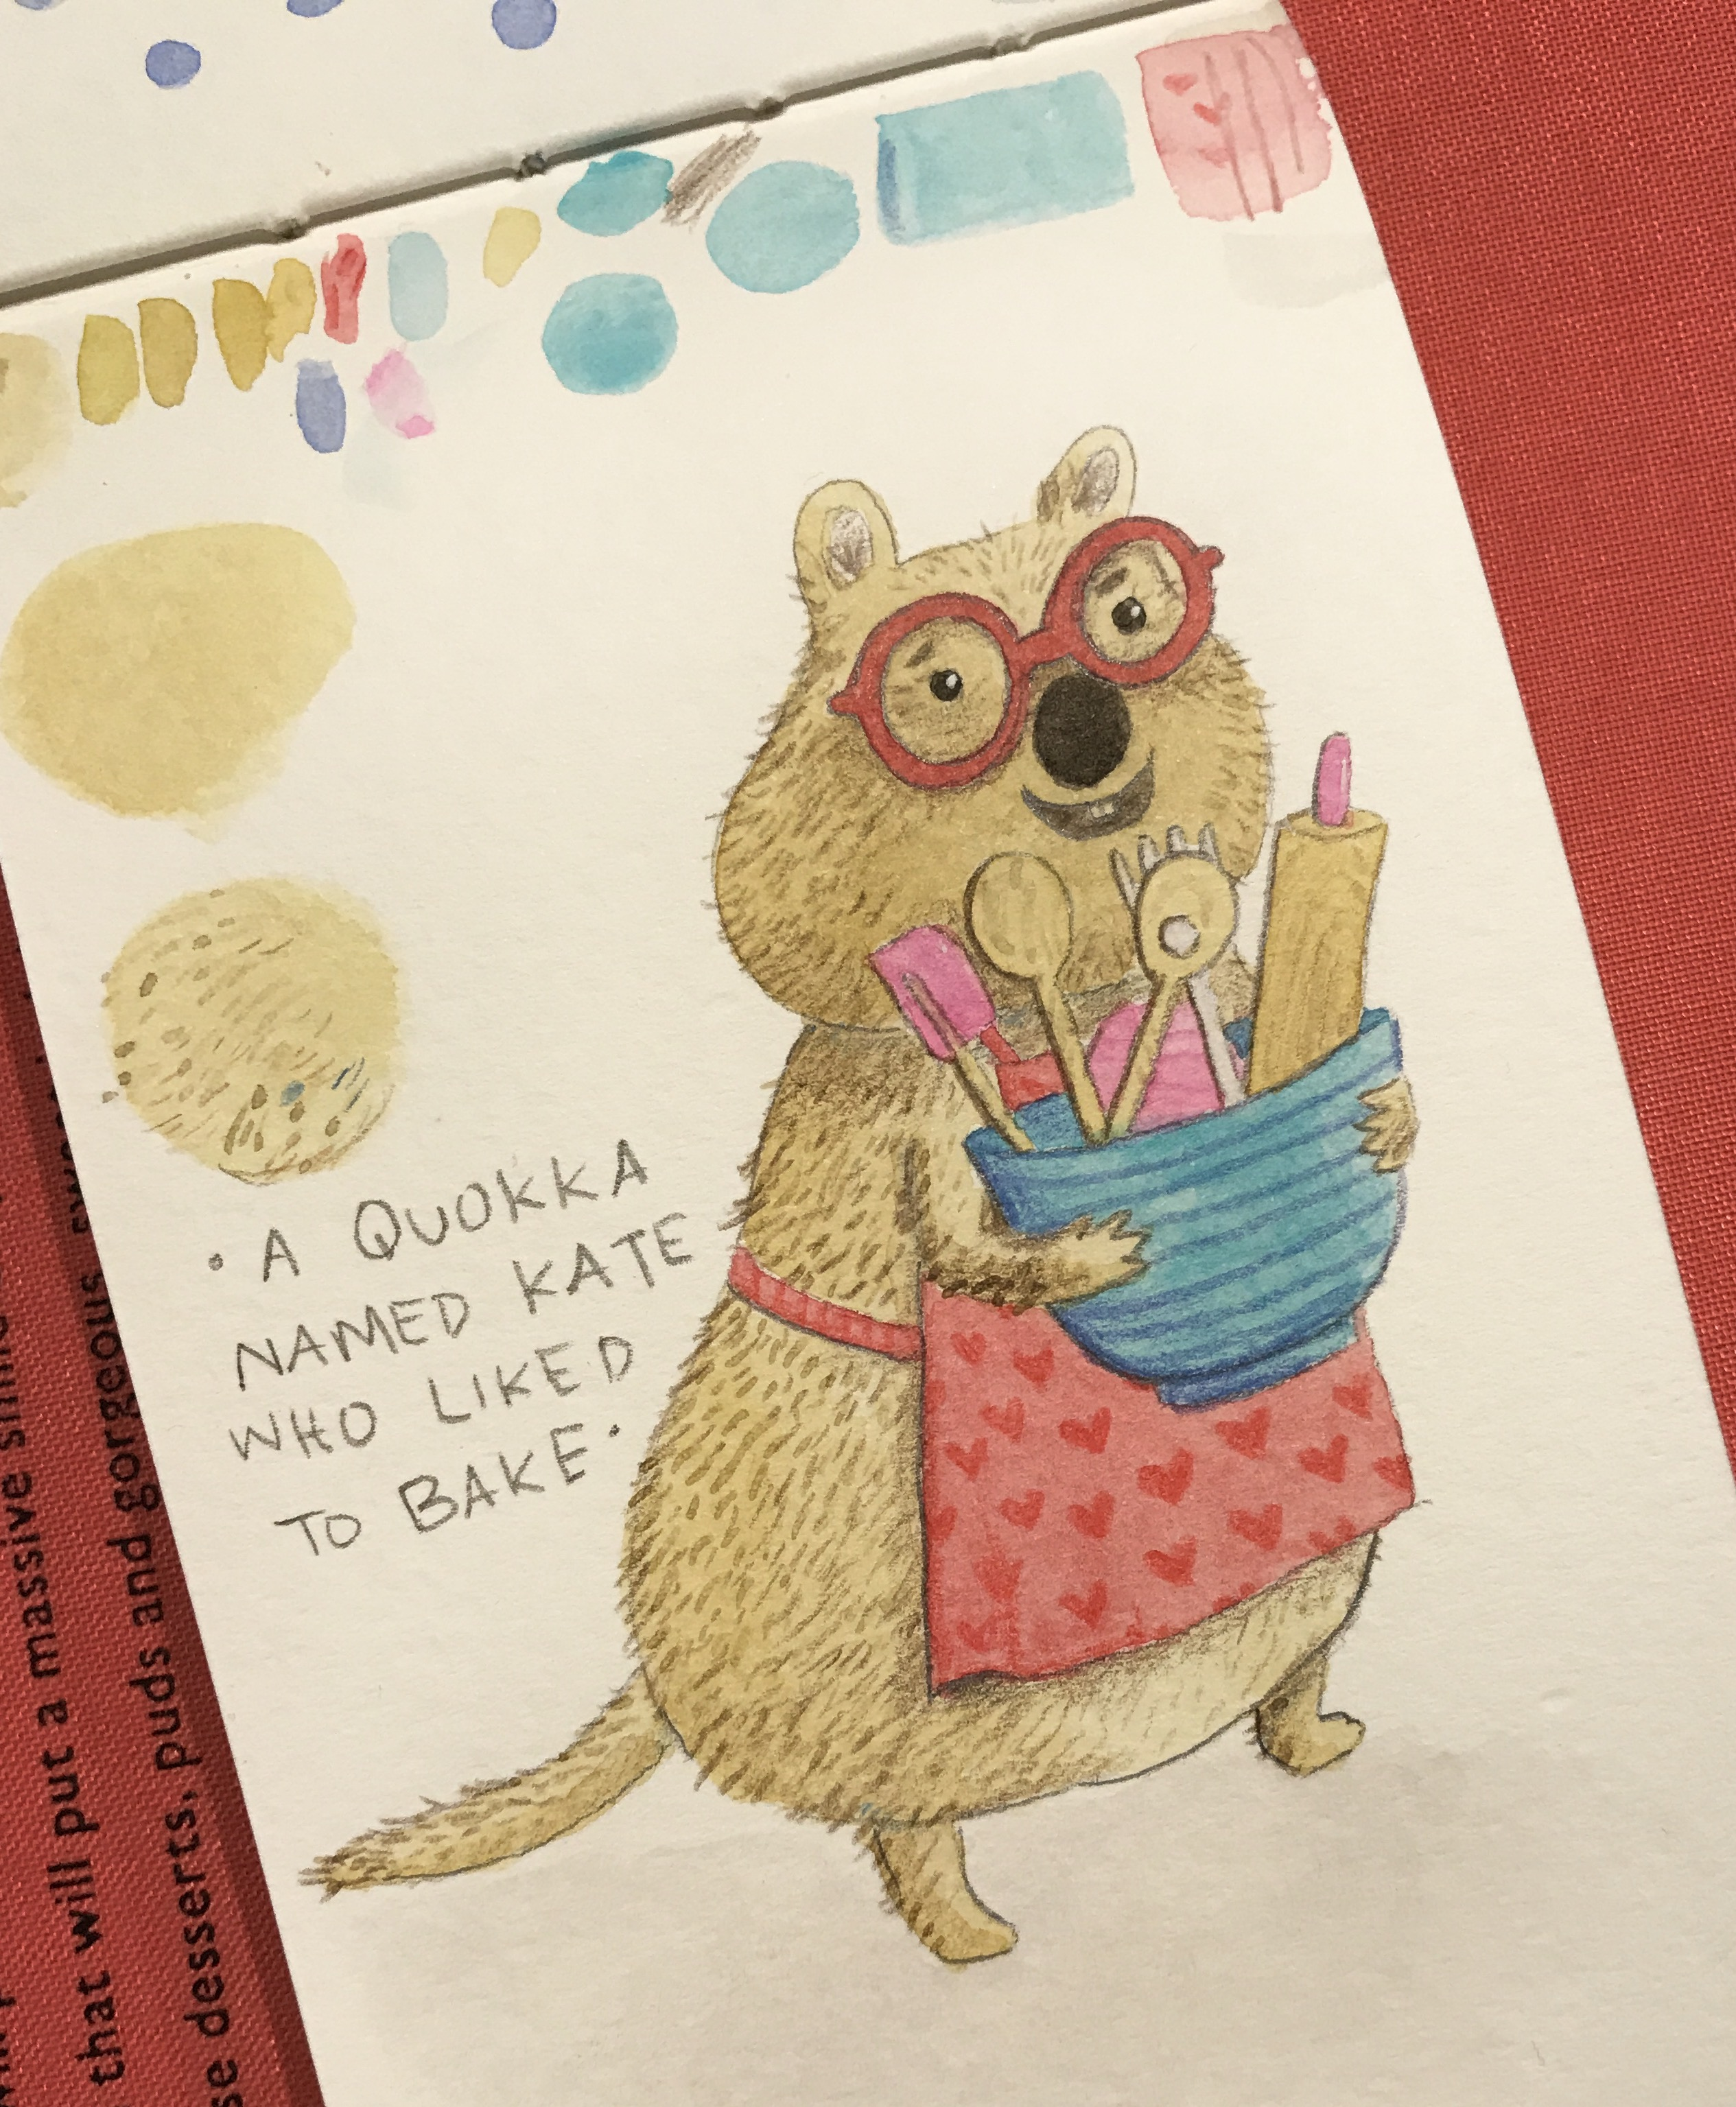 Kate Quokka illustration by Amie Sabadin